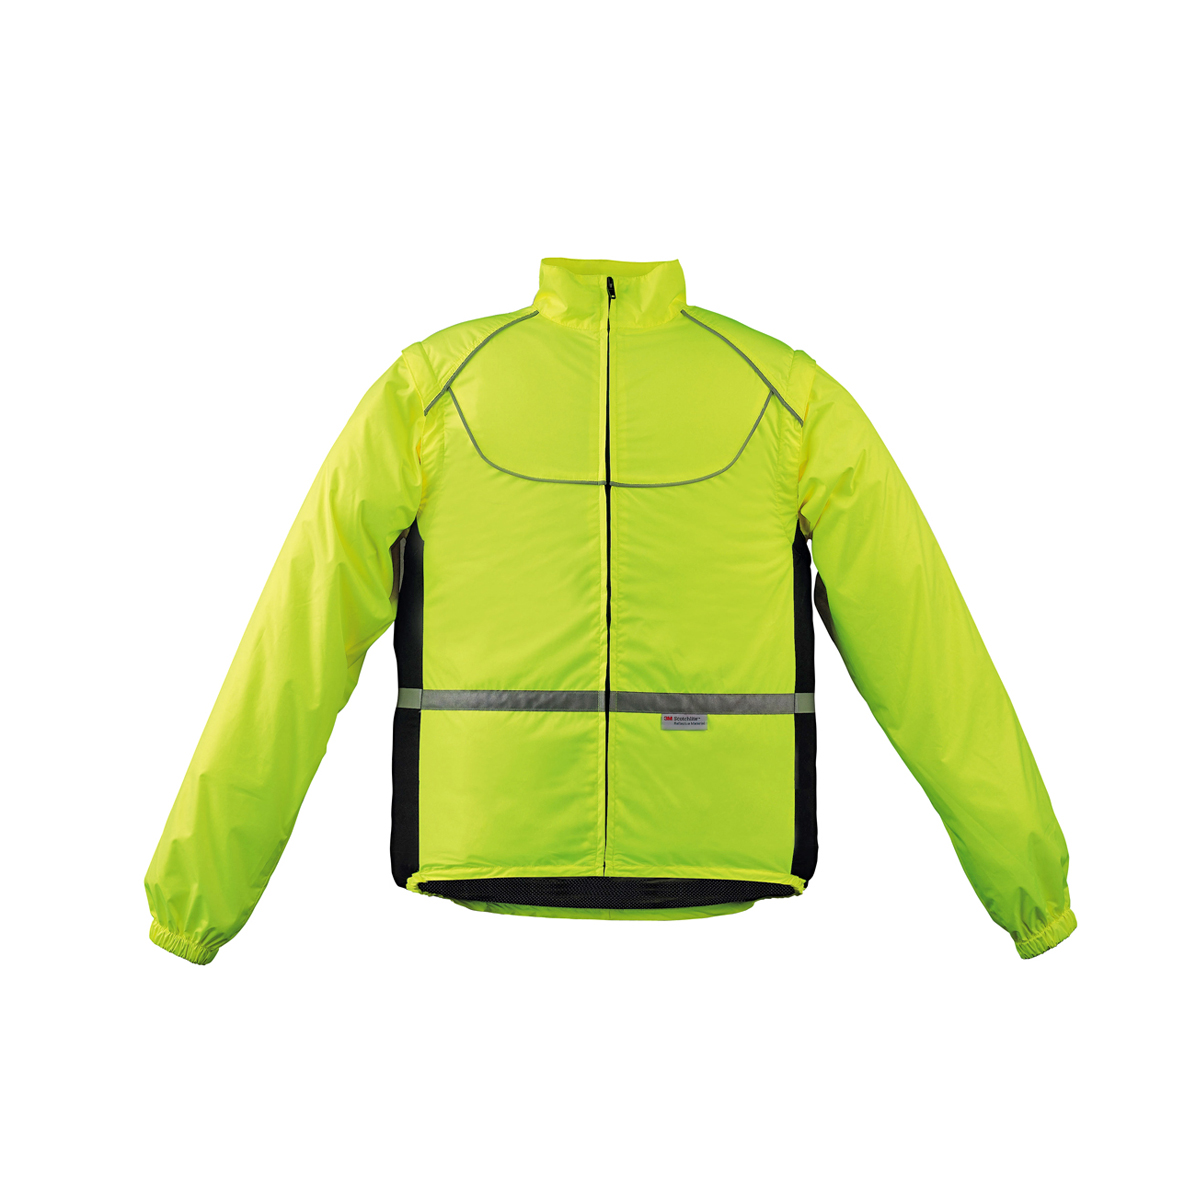 Veste vélo Wowow fluo Hot160 taille S